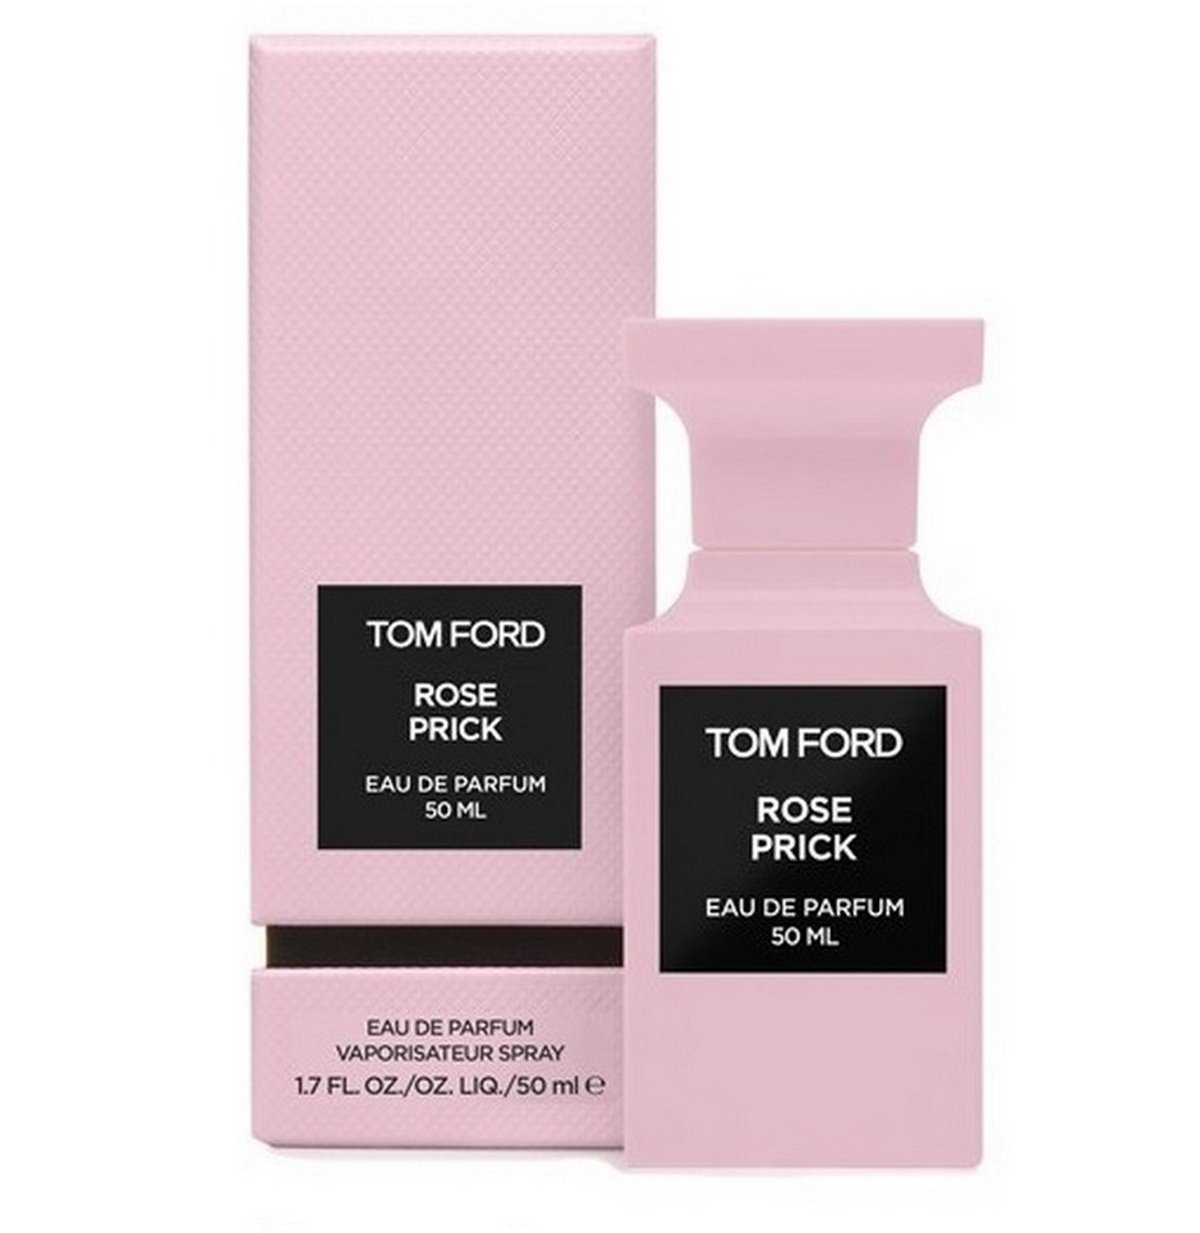 Rose Prick Unisex Perfume By Tom Ford Is Here To Appease